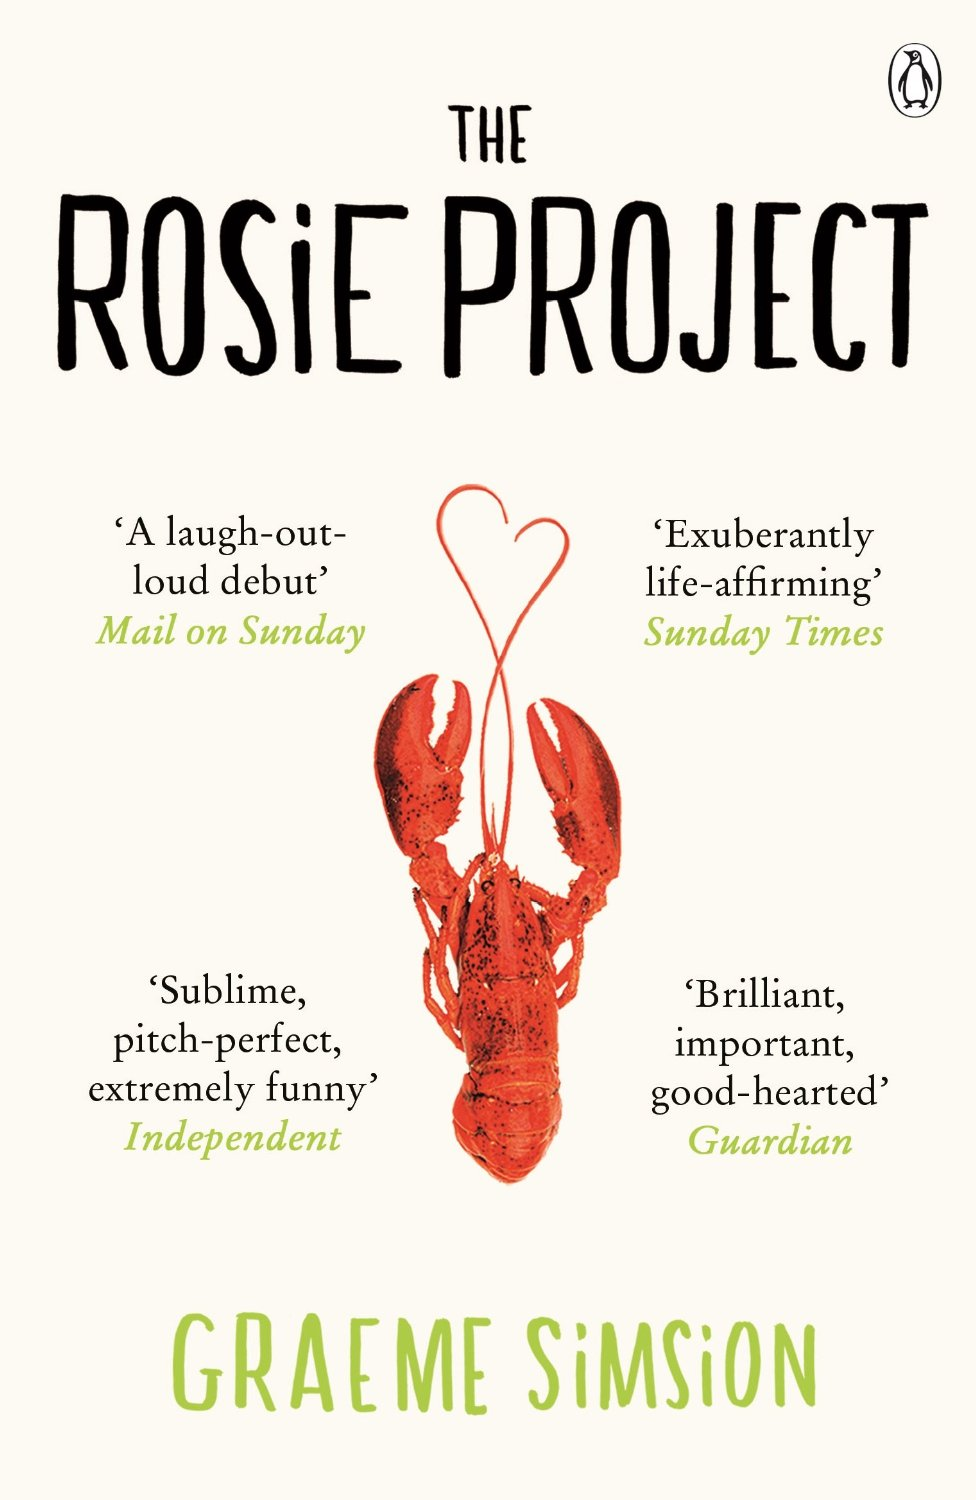 The Rosie Project Graeme Simsion Cover